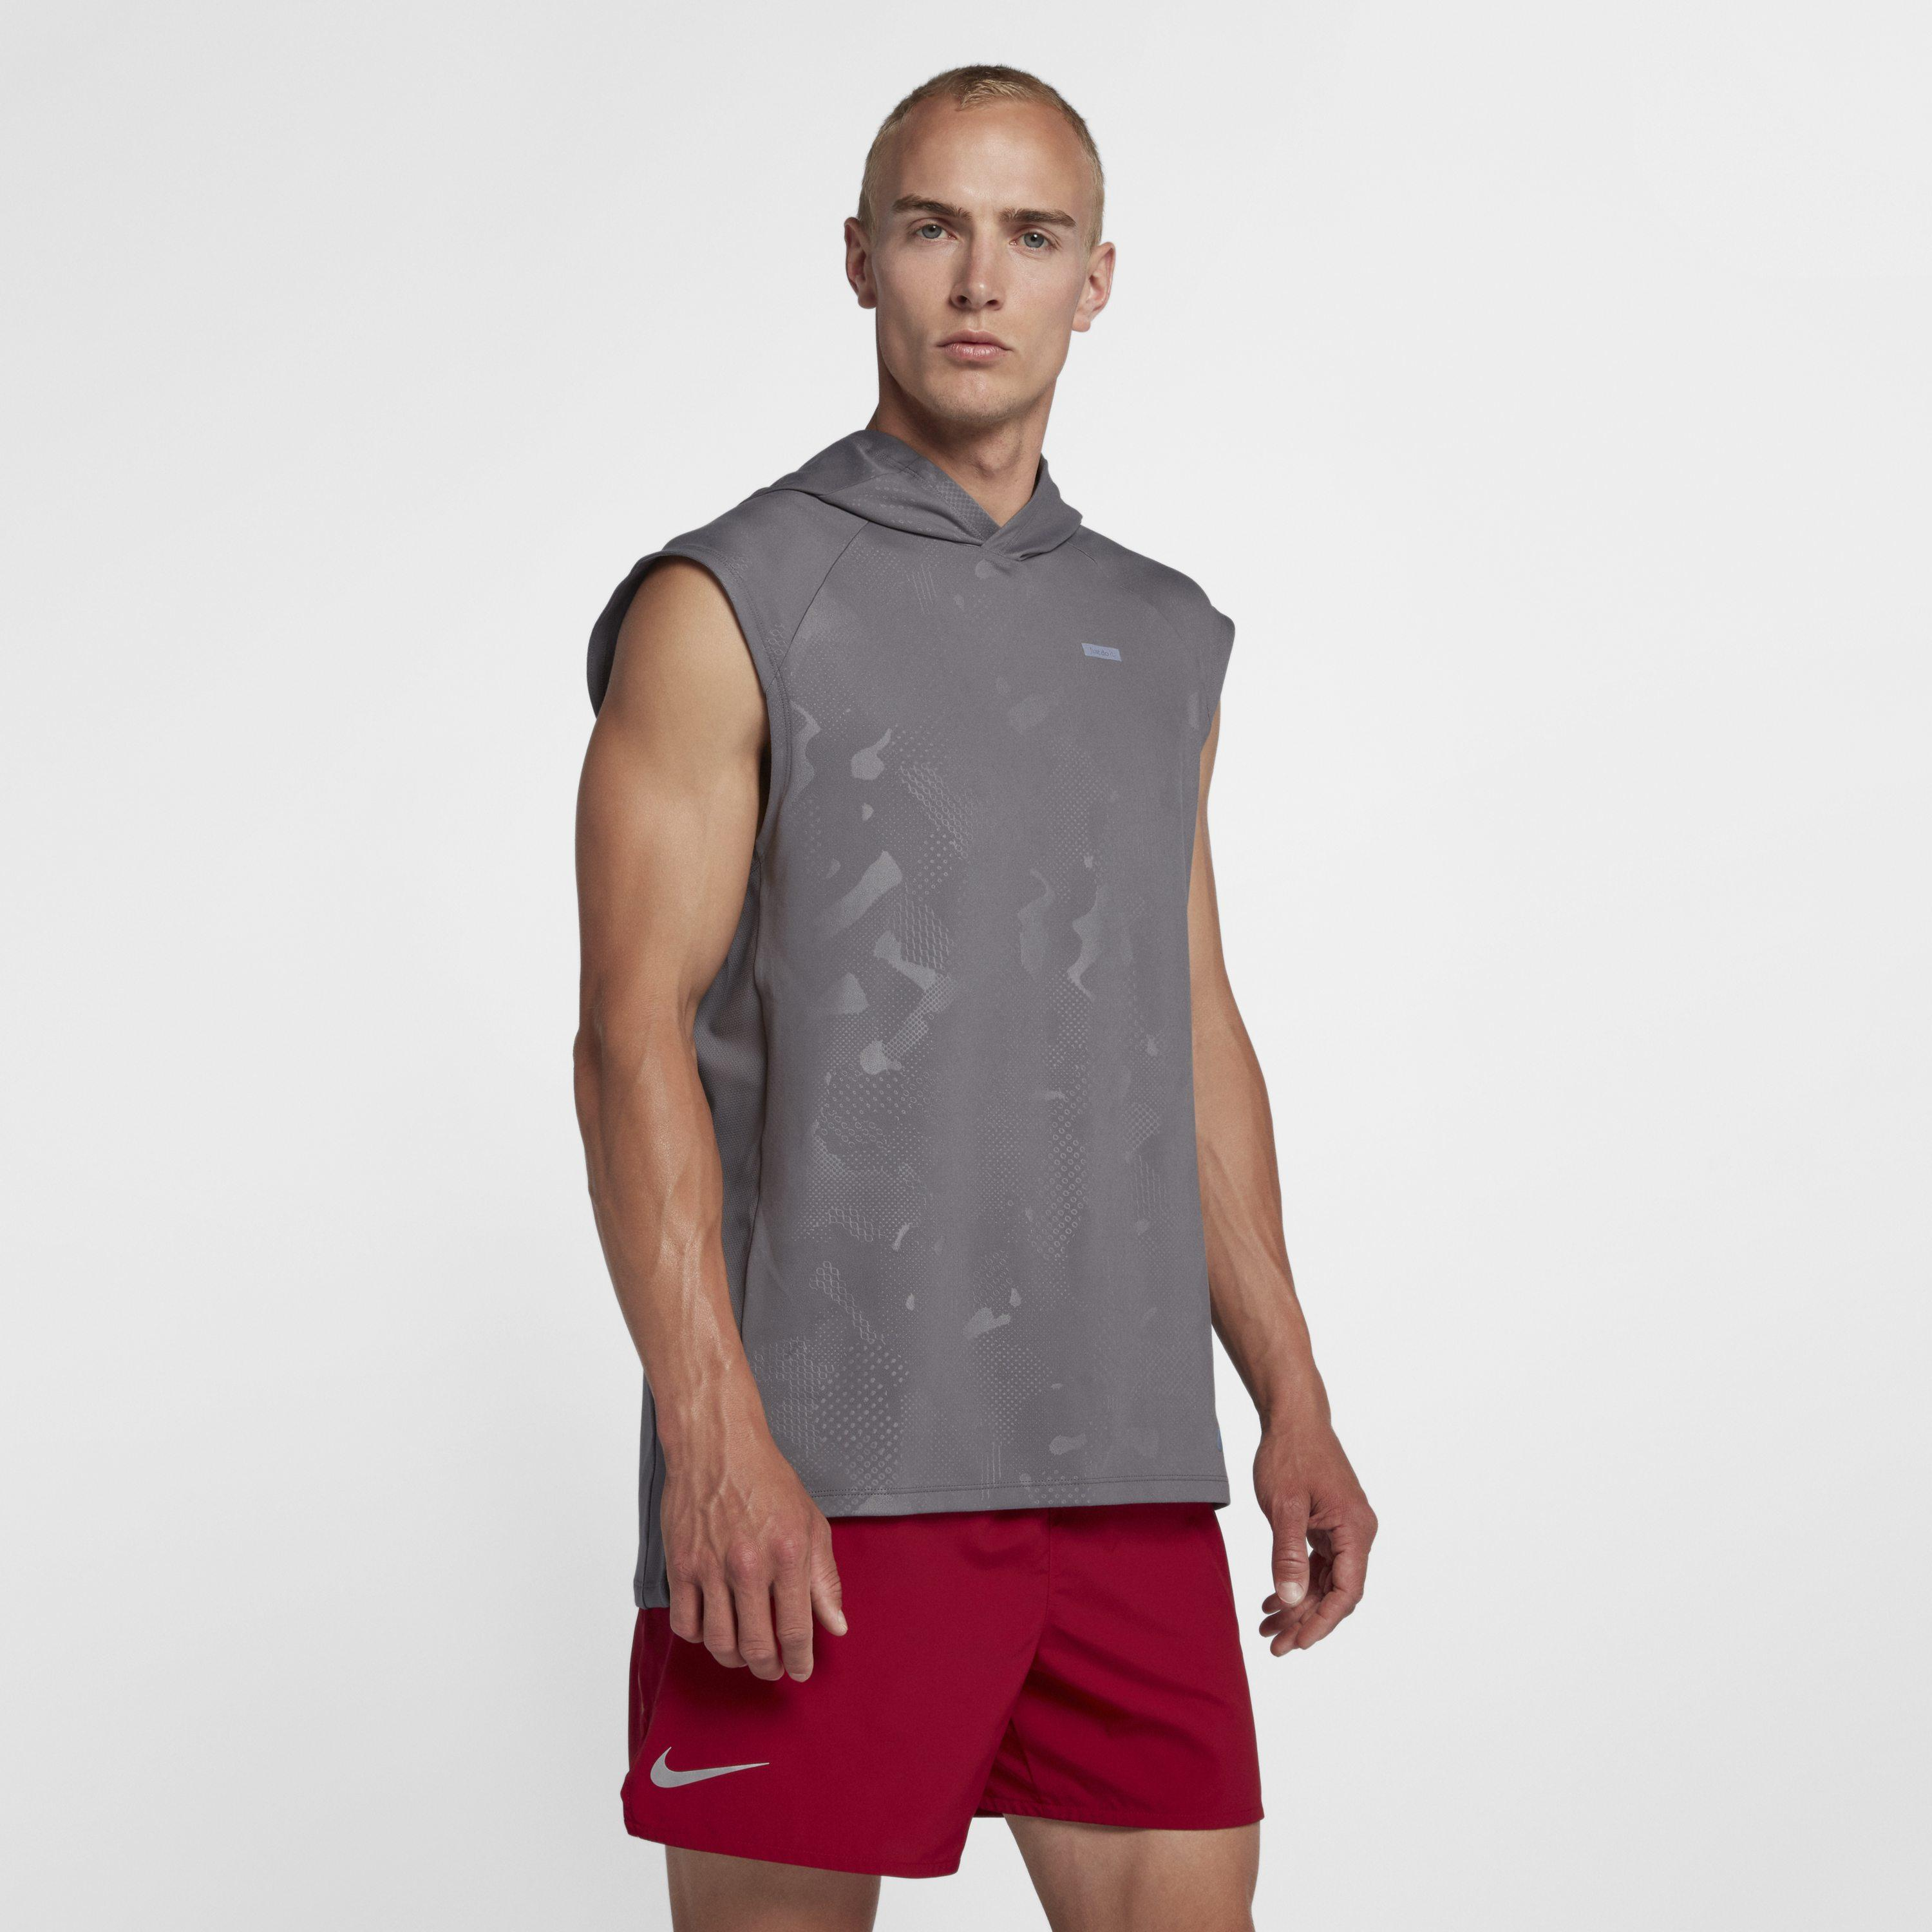 05f95471fb922 Nike Sleeveless Running Hoodie in Gray for Men - Save 31% - Lyst